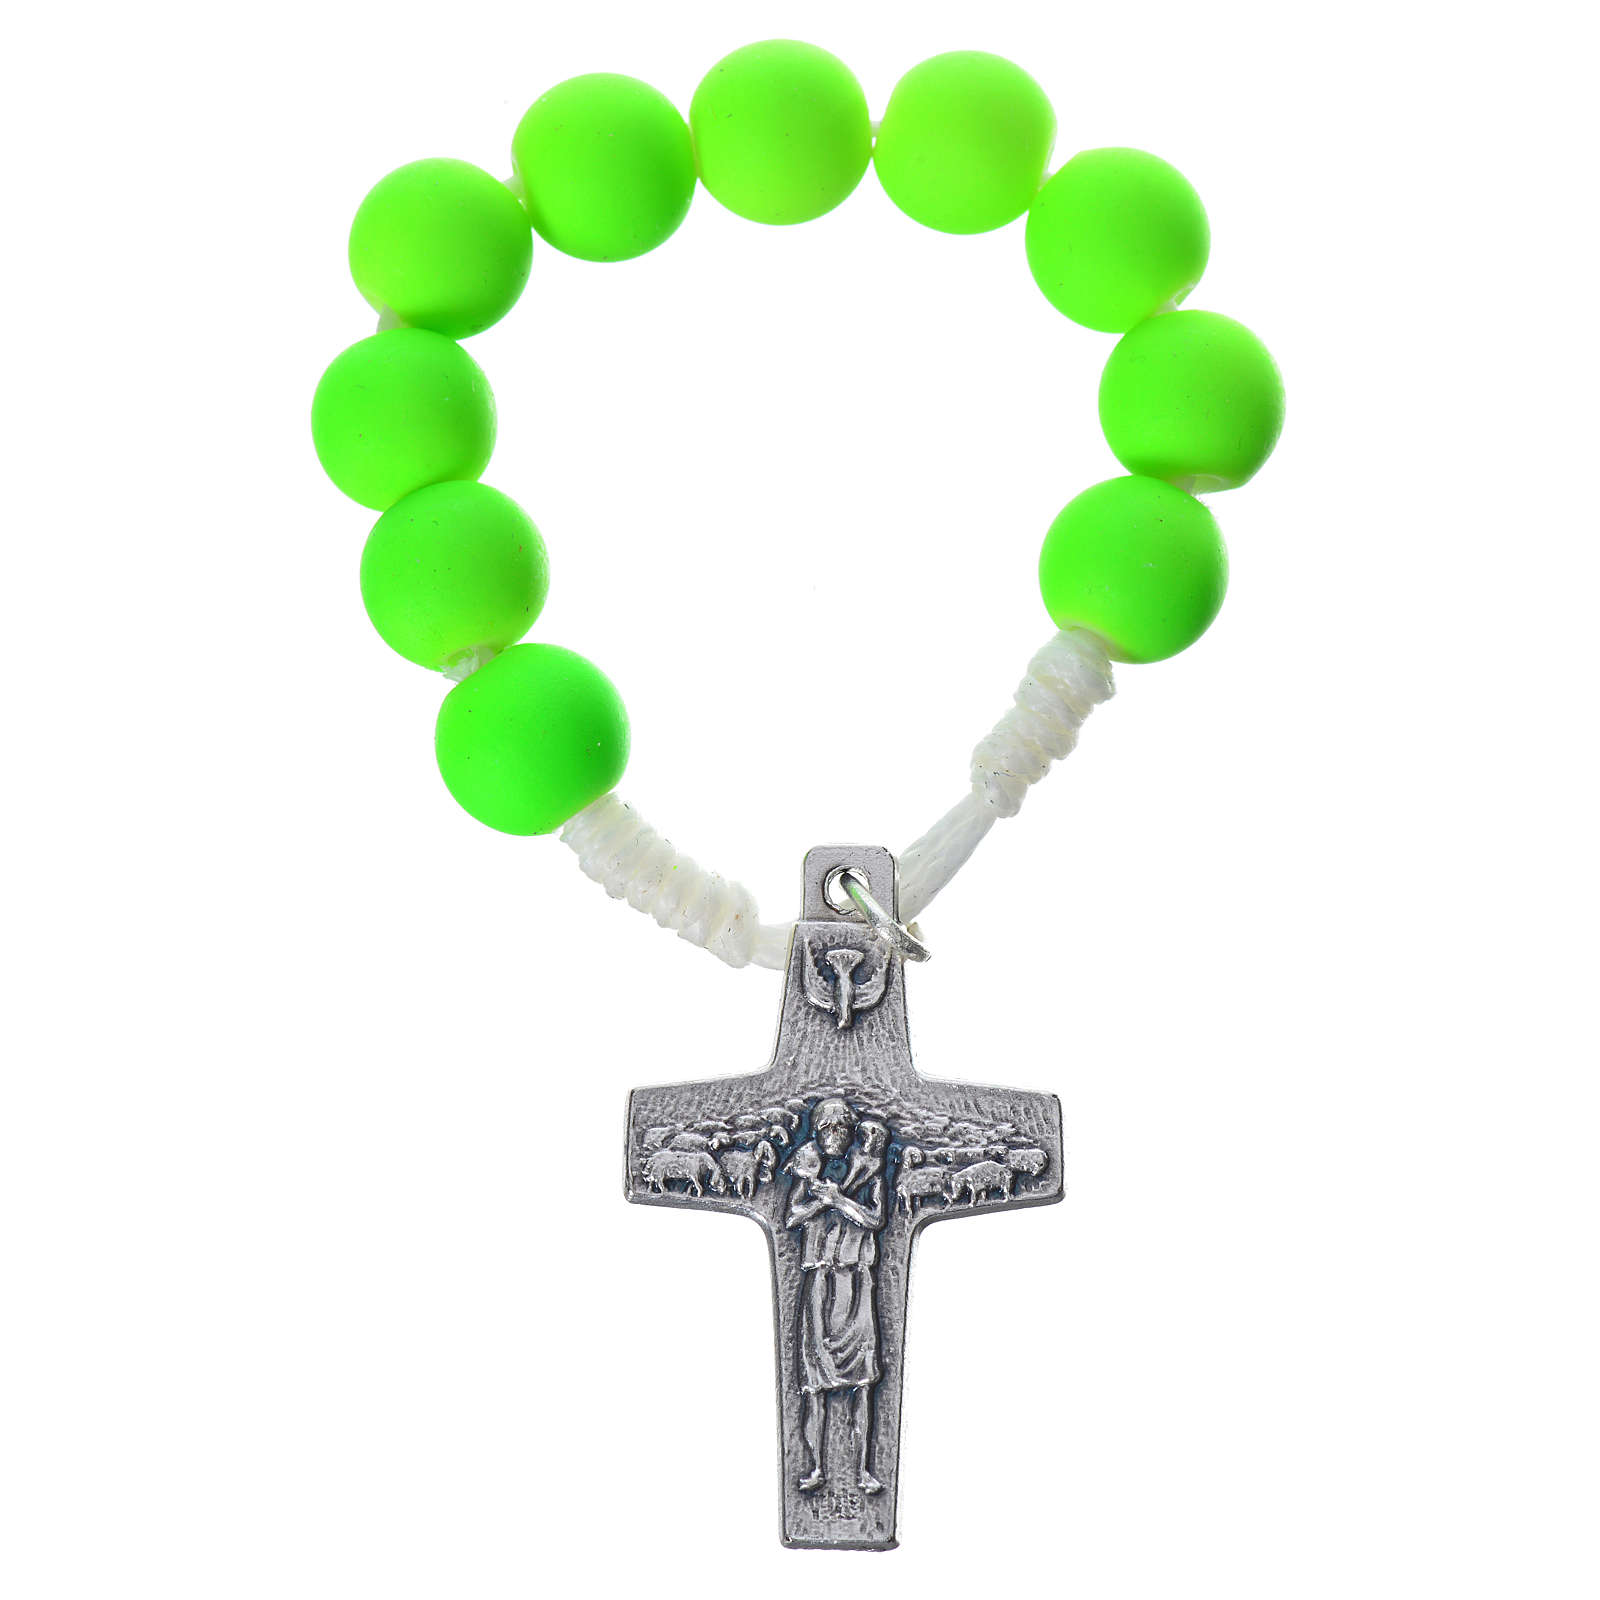 Single decade rosary beads in green fimo, Pope Francis 4